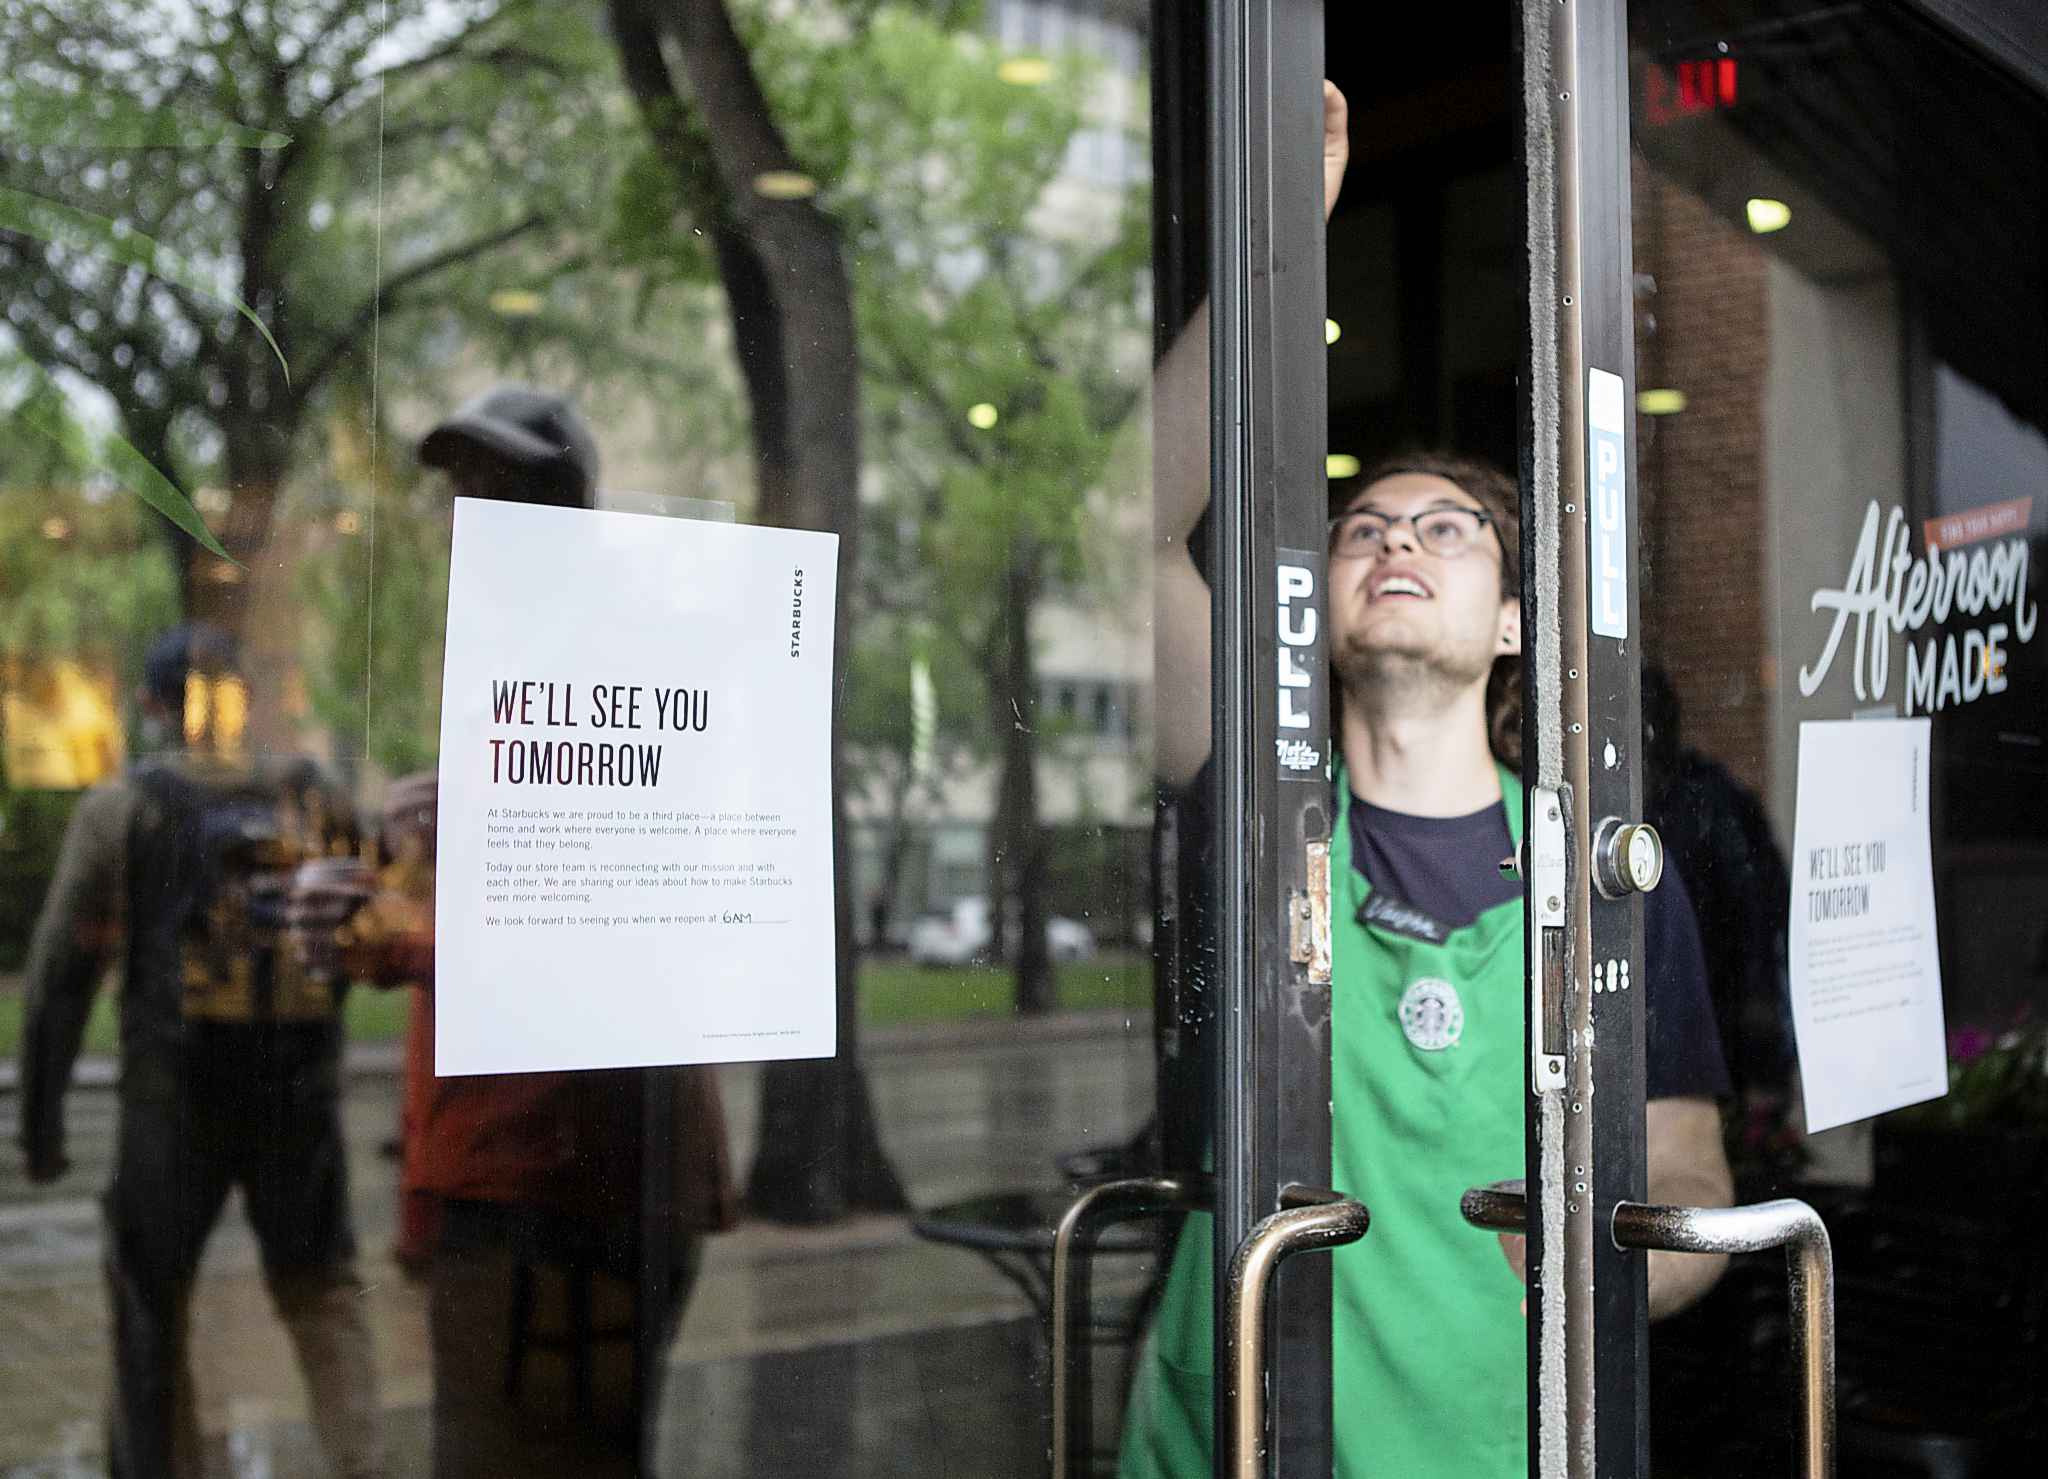 ANDREW RYAN / WINNIPEG FREE PRESS A Starbucks employee locks the door at 2:30 p.m. after the last customers left the location on Broadway. The early closure is part of a continent-wide shut down after a racially insensitive incident drew international attention and prompted racial sensitivity training on June 11, 2018.